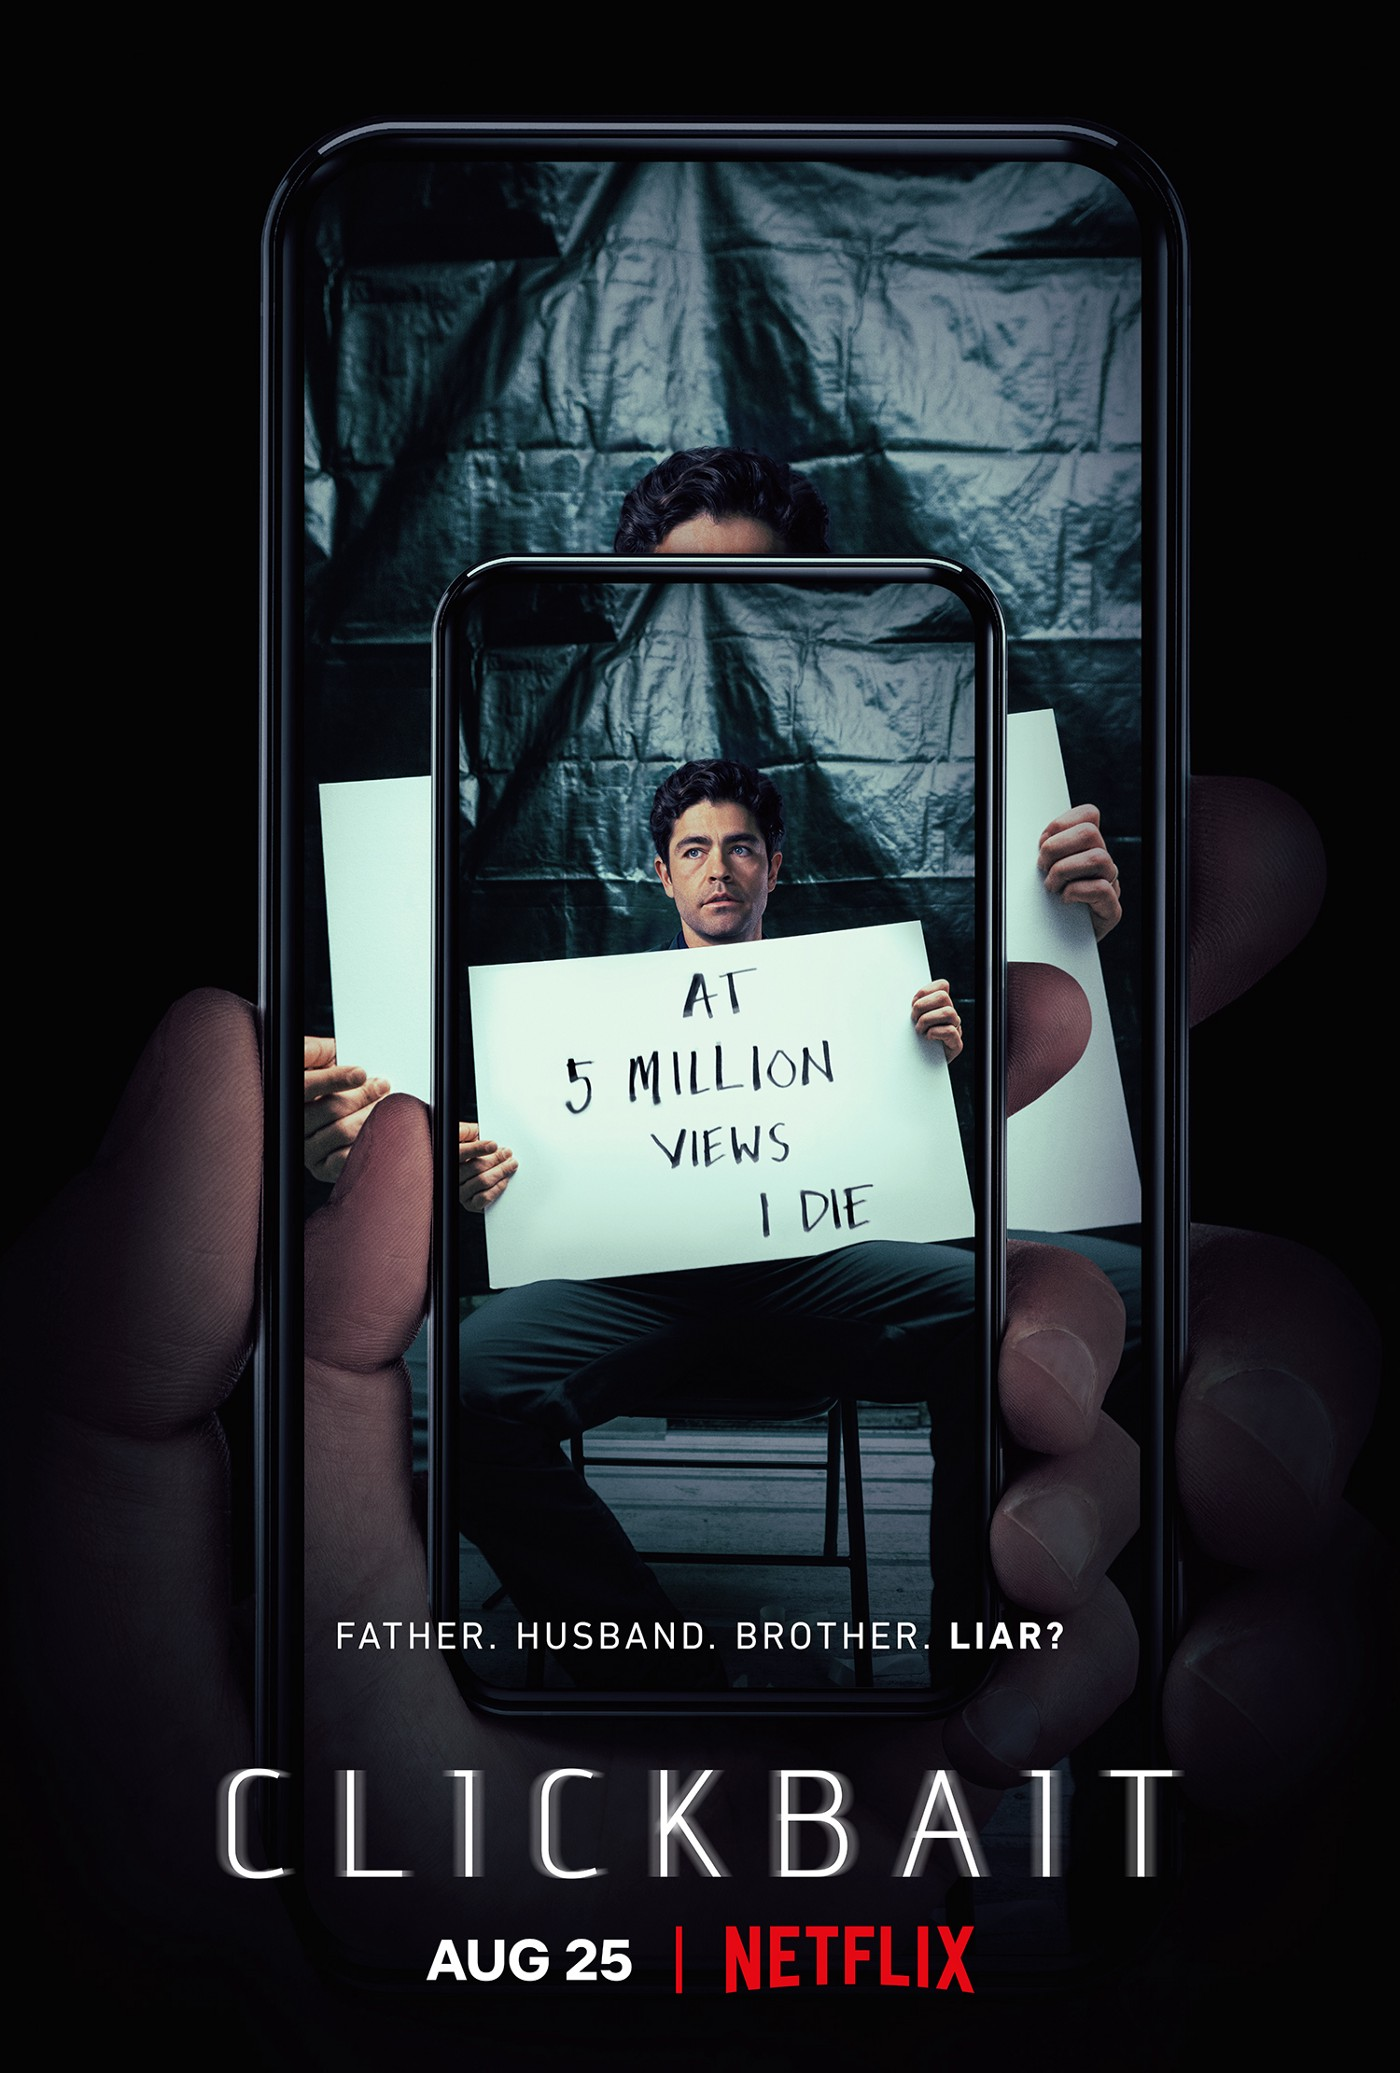 """The series poster of the show where you can see a phone with the viral video on it. The video shows Nick Brewer holding a sign that reads """"At 5 Million Views I Die""""."""